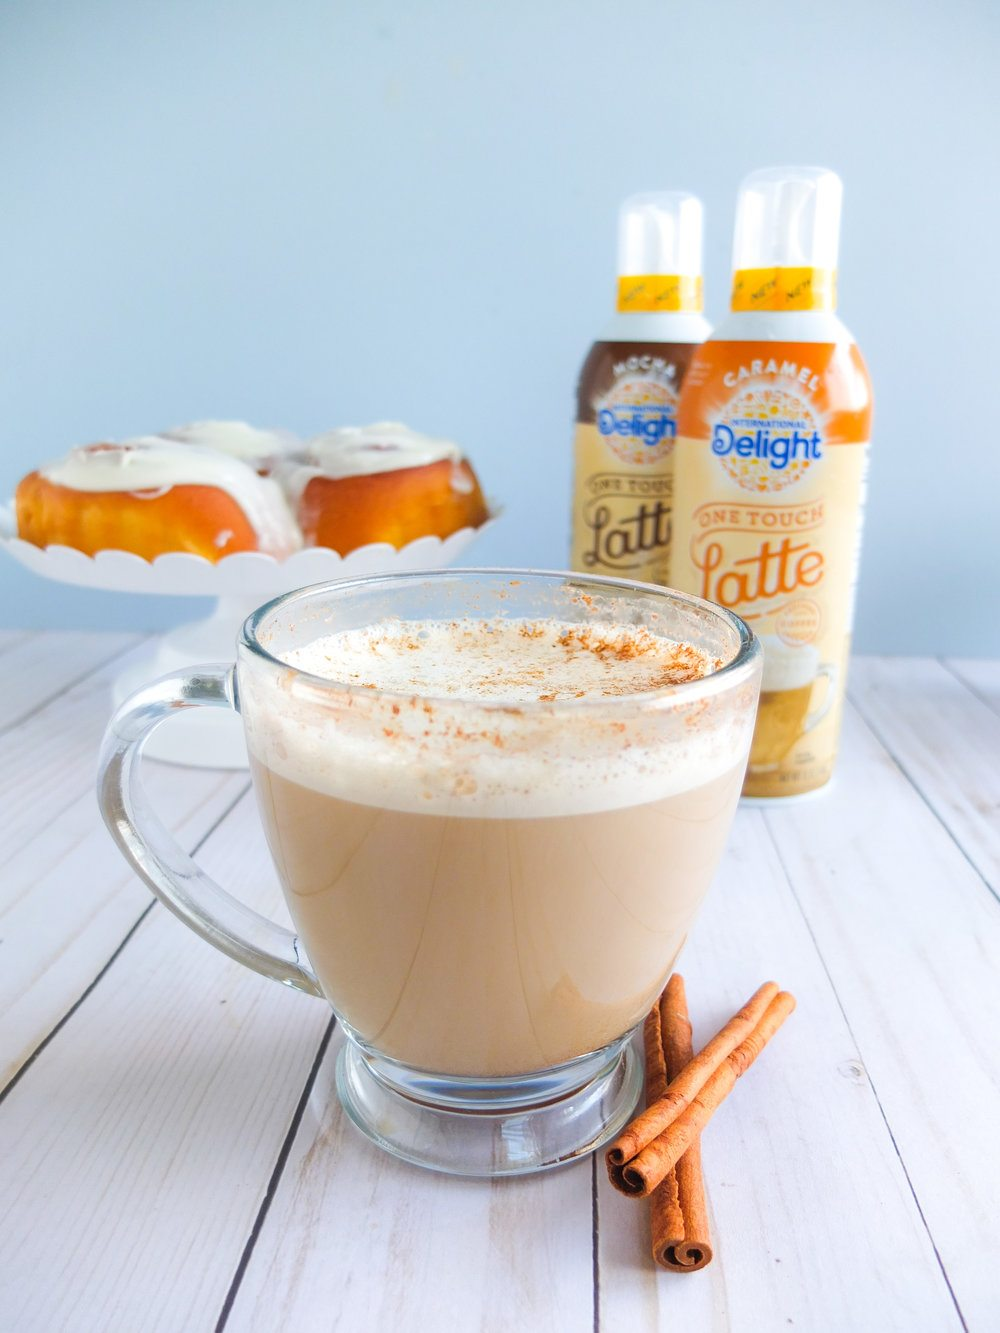 Easy cinnamon roll latte recipe to fuel your mornings and impress guest using Caramel One Touch Latte™. Perfect and easy holiday entertaining recipes, easy brunch recipe, perfect breakfast recipe to impress guest, and easy recipe for fall. #ad #LatteMadeEasy // www.elletalk.com #morning #breakfast #breakfastrecipe #coffee #coffeerecipe #cinnamonroll #cinnamonrollrecipe #latte #latterecipe #easyrecipes #holidayrecipe #holidayentertaining #brunch #brunchrecipe